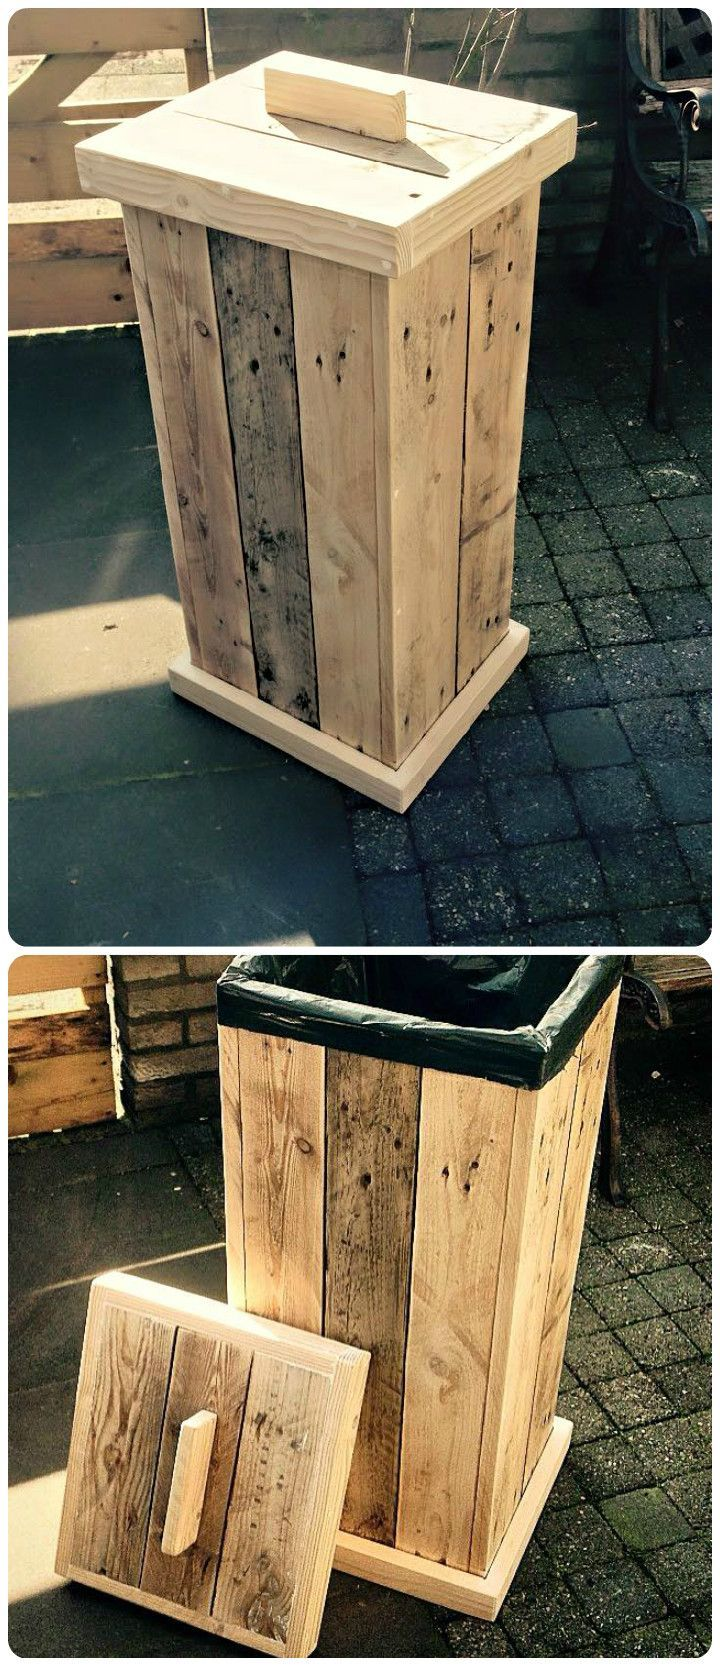 Pallet kitchen garbage and recycle. Great idea!